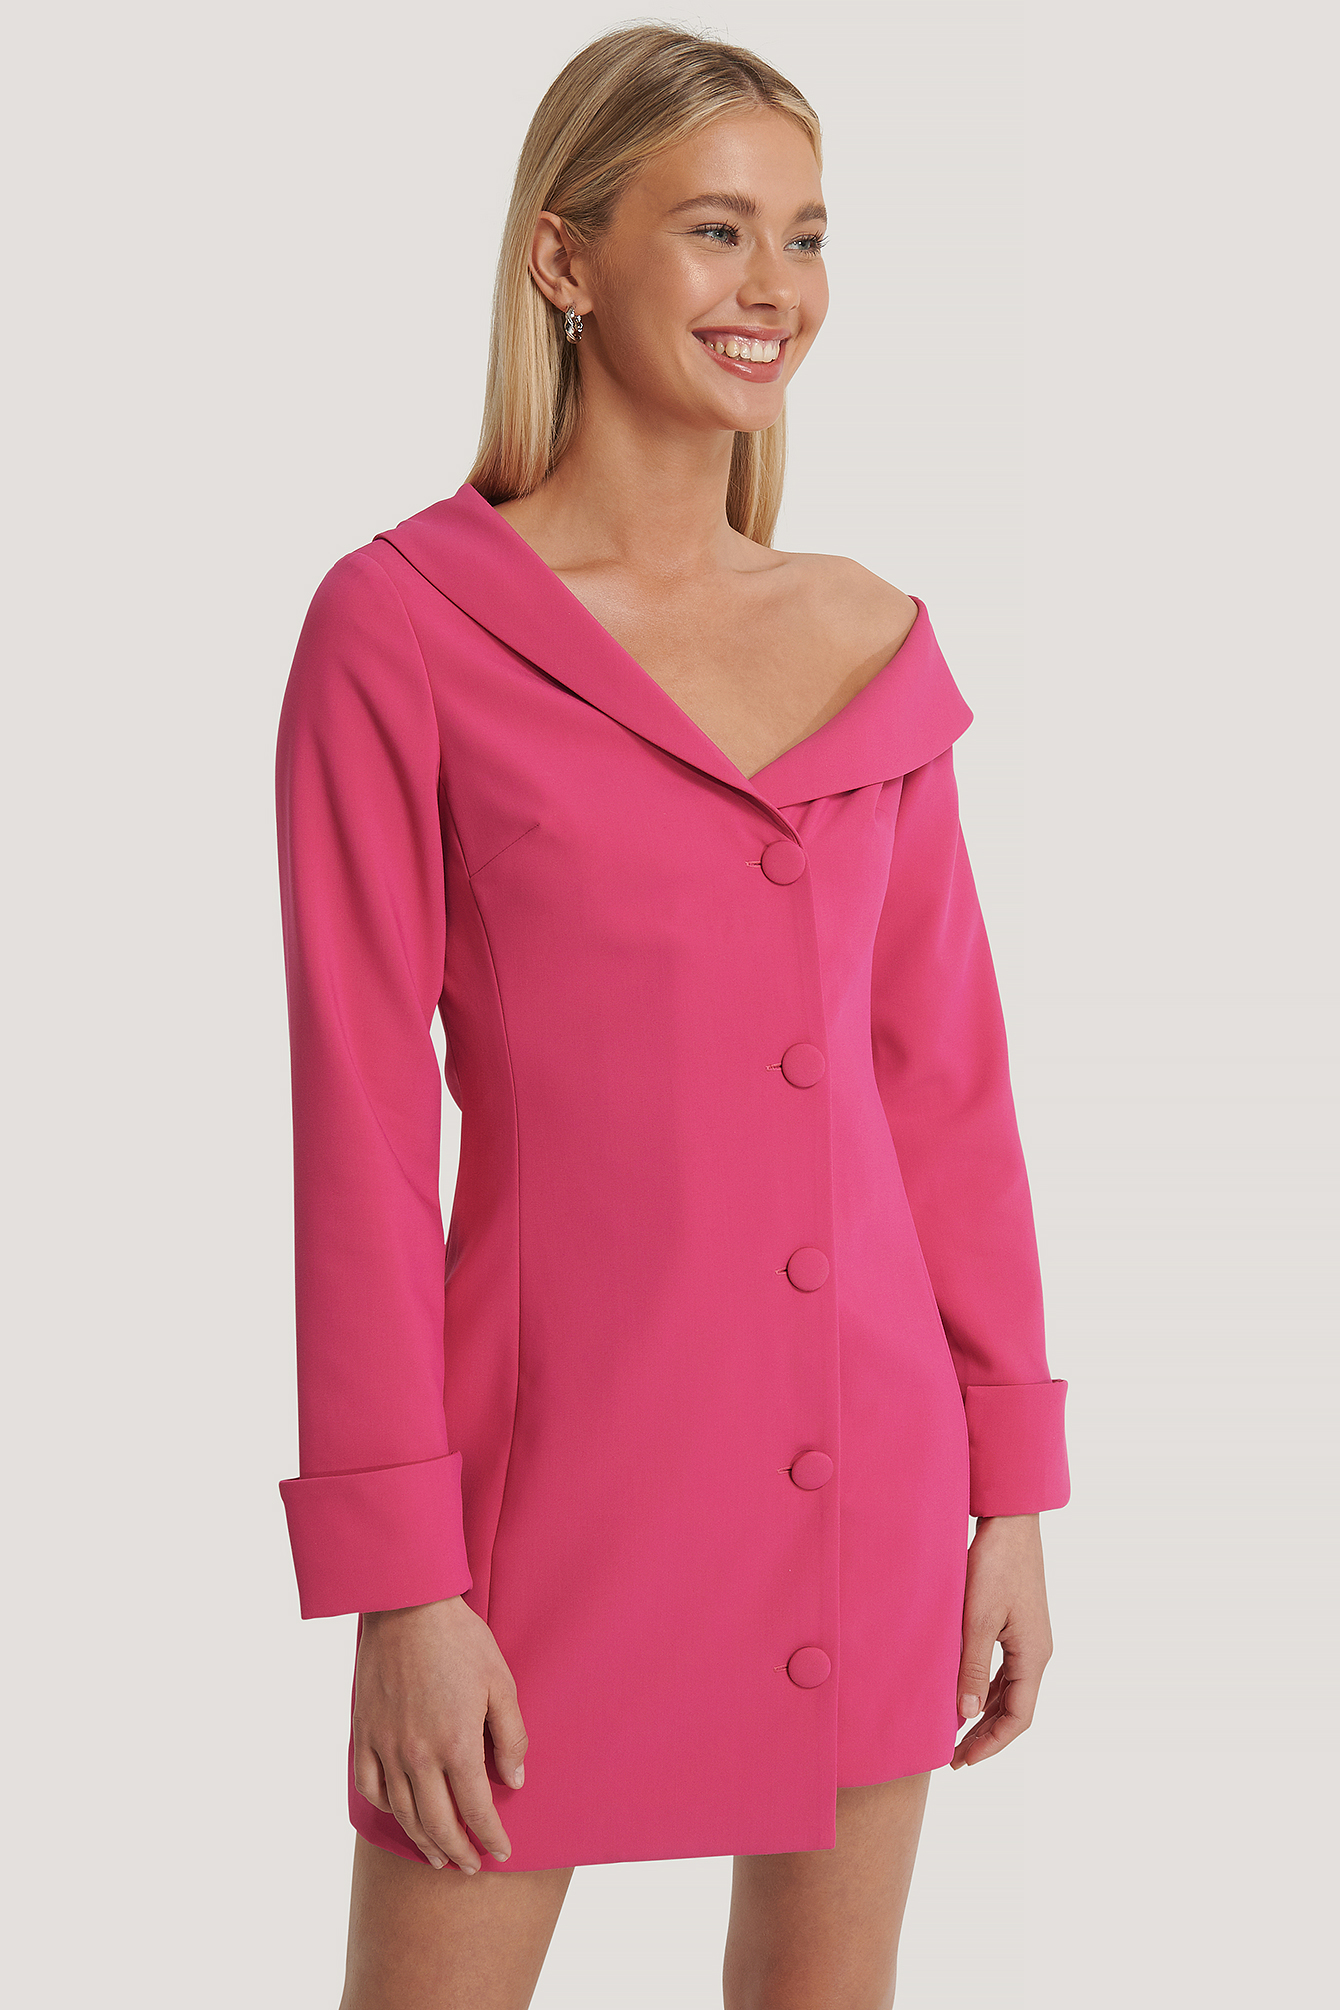 Pink Slip Shoulders Mini Dress